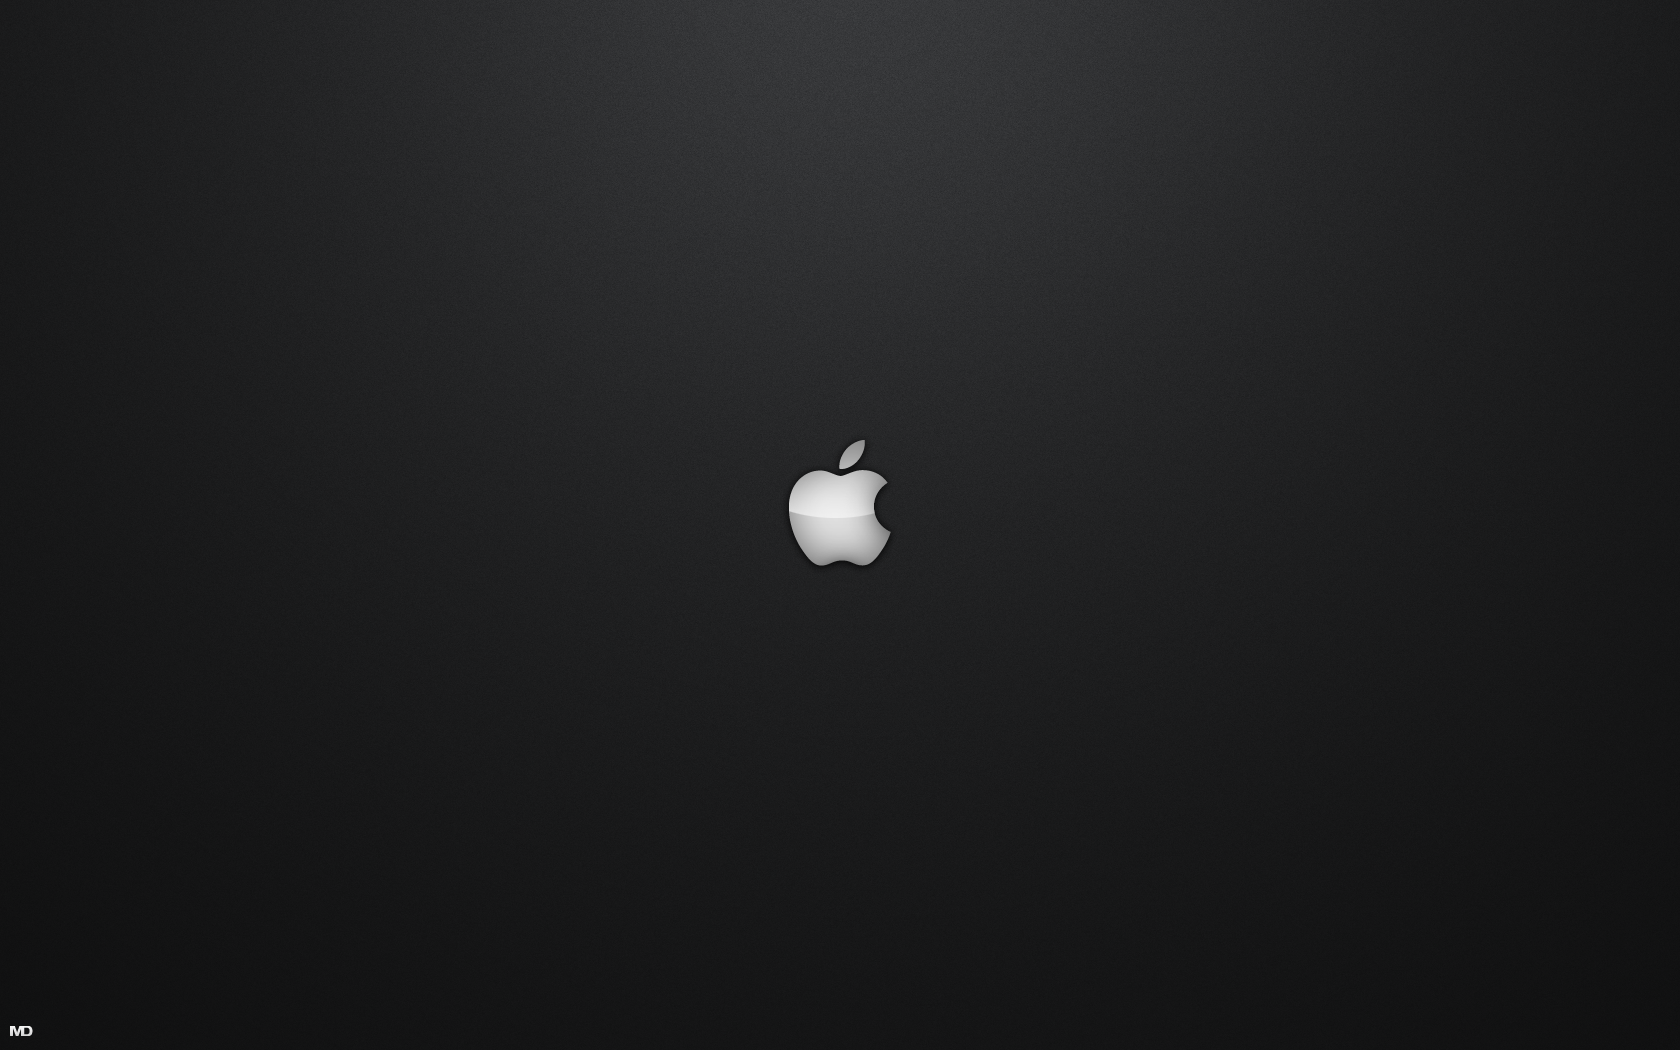 Black And White Apple Wallpaper 1680x1050